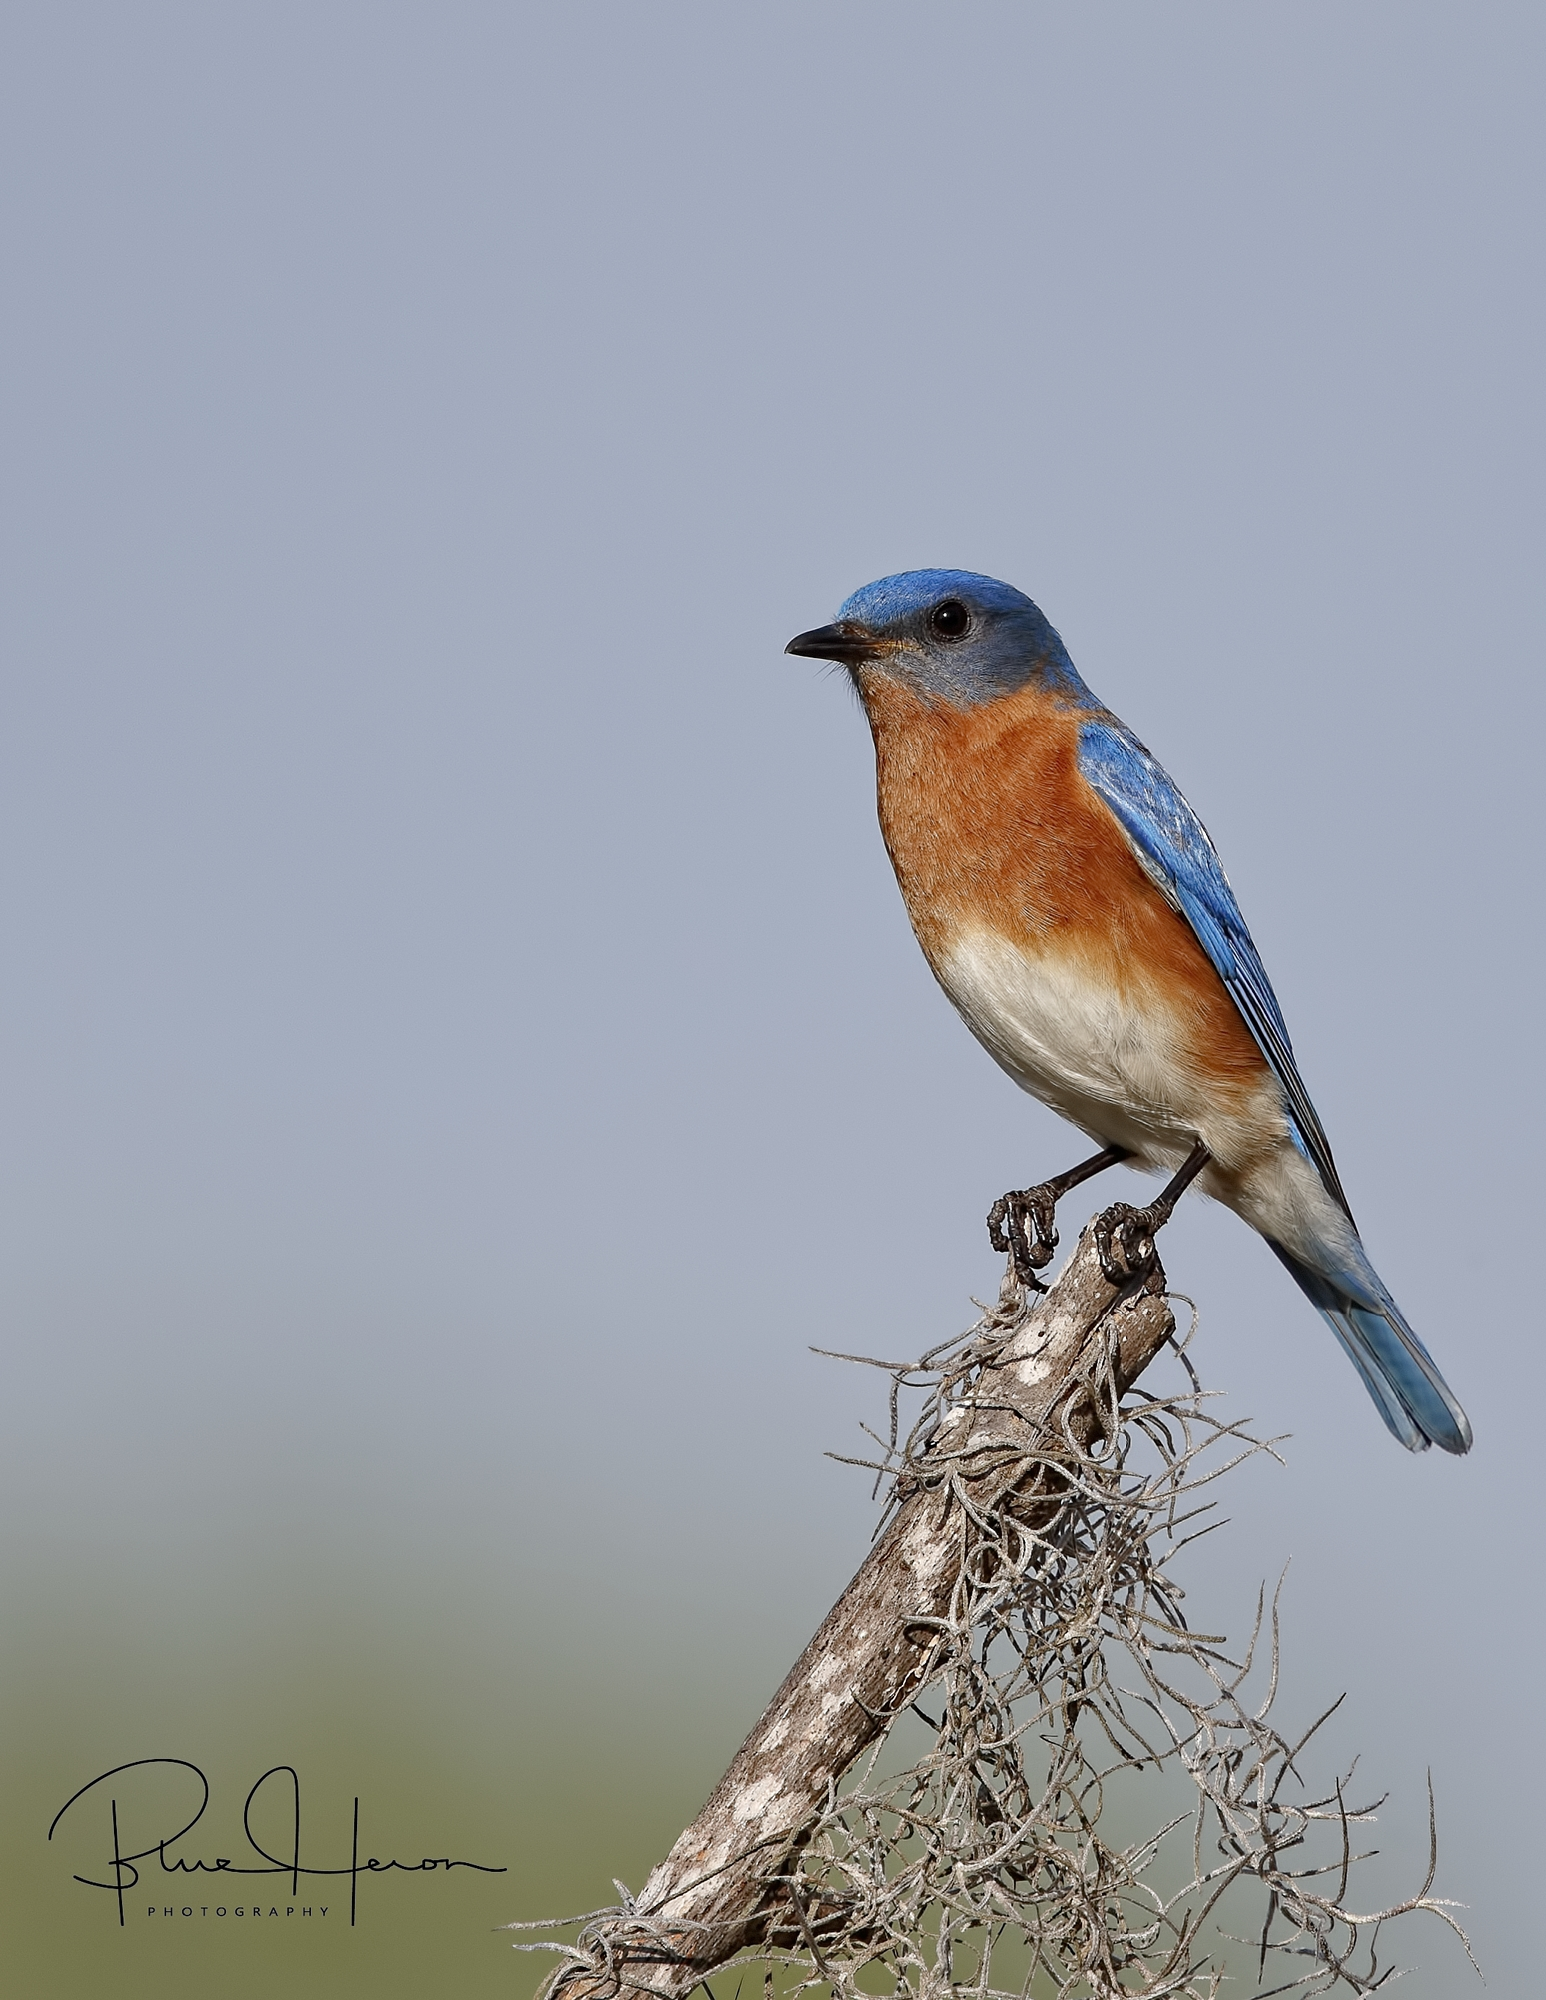 Daddy Bluebird is keeping a close watch over the nest..